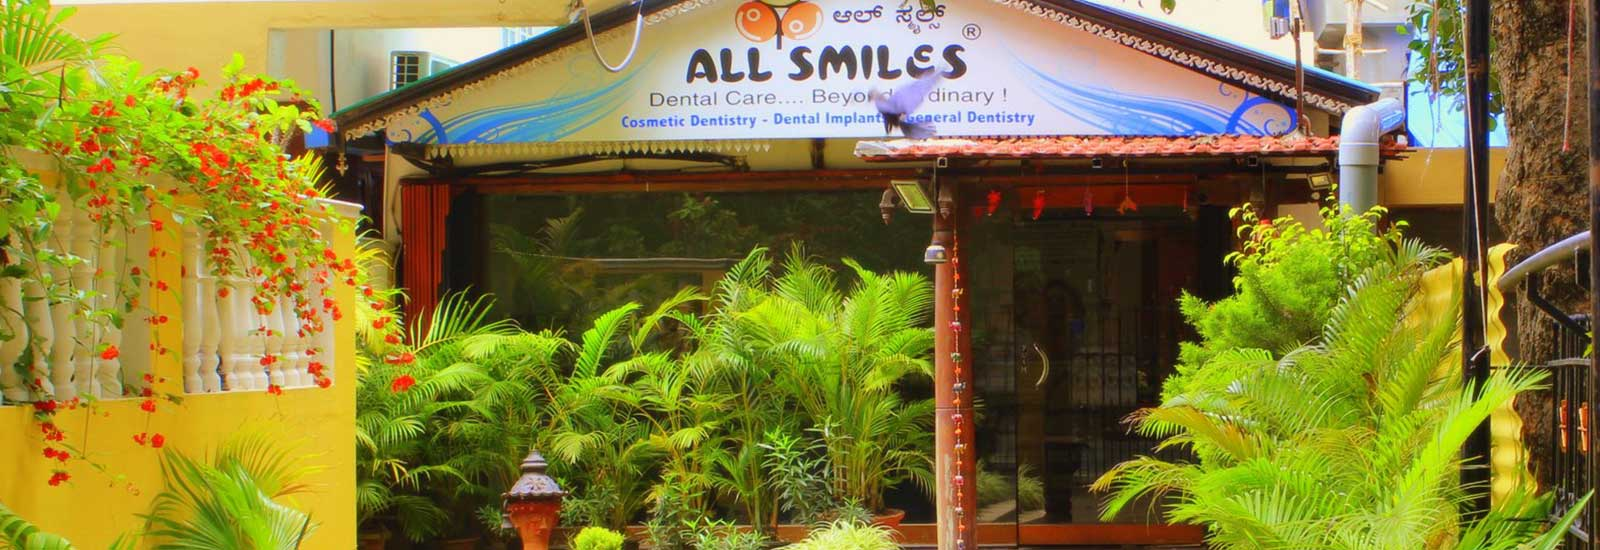 Dental implant center bangalore